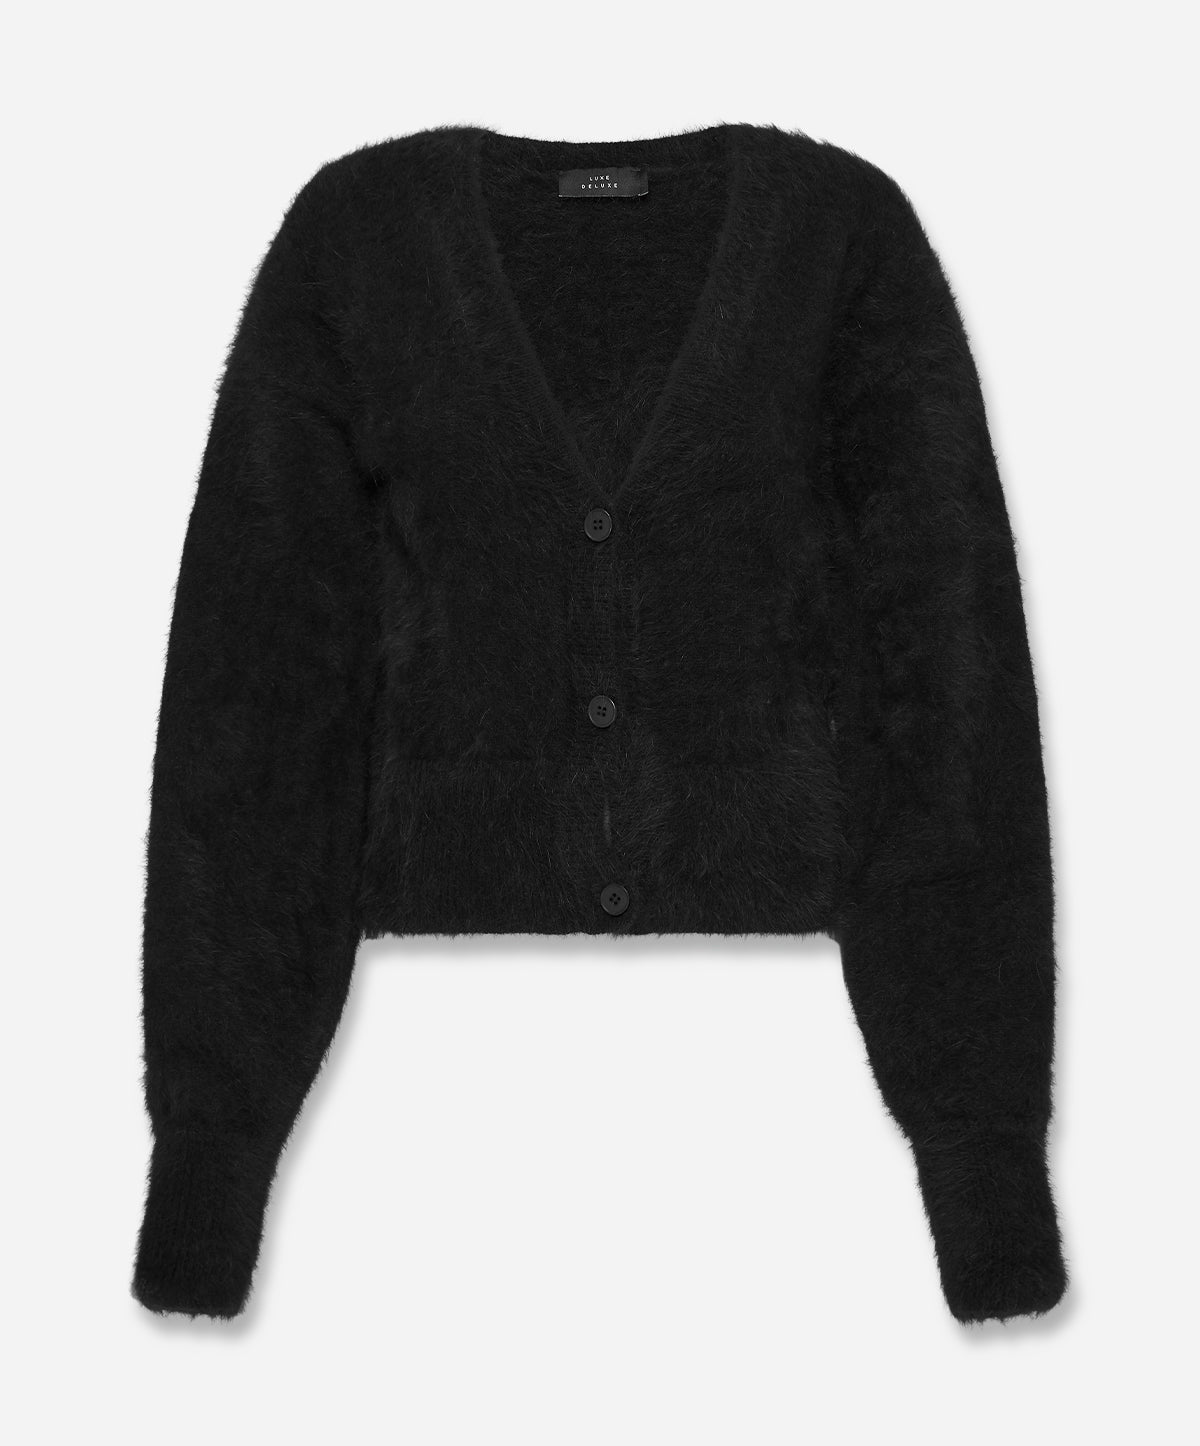 Our Song Angora Crop Cardigan